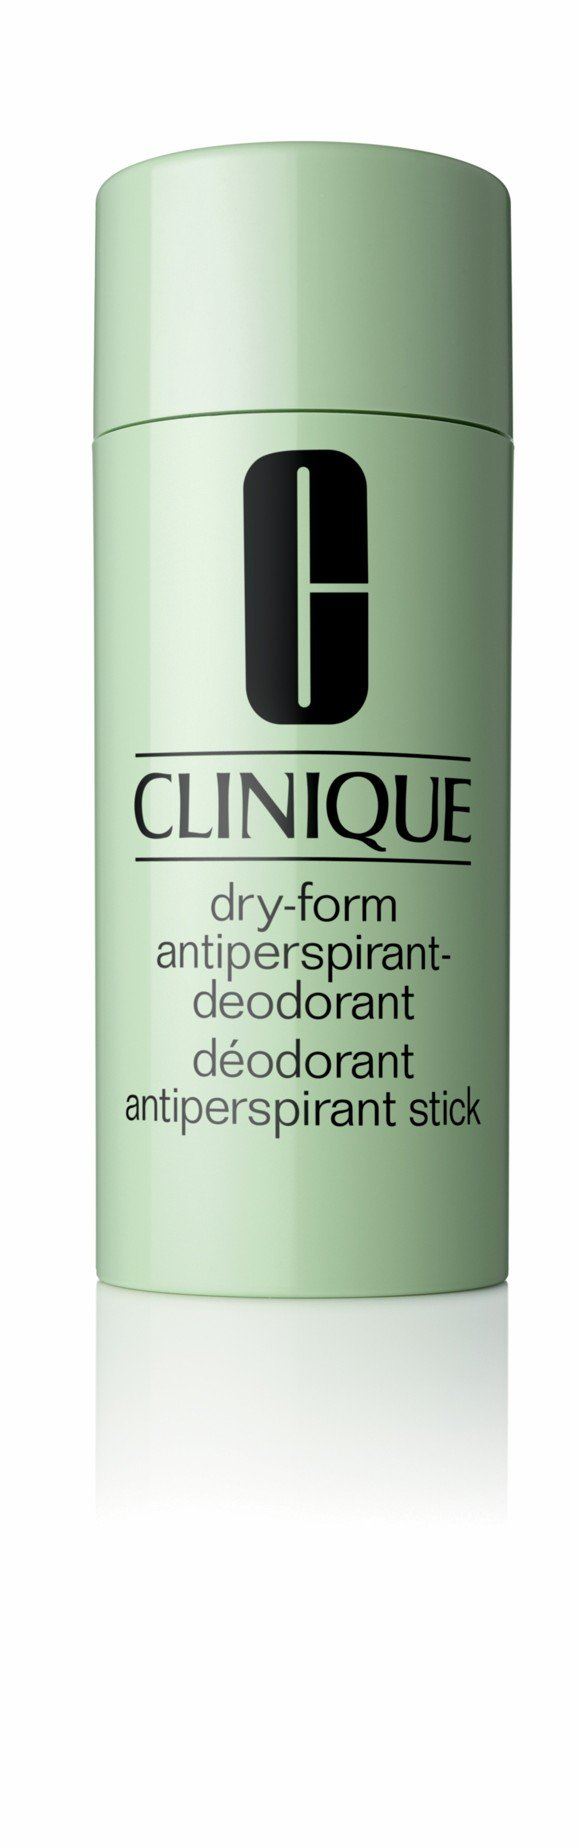 Clinique - Dry-Form Antiperspirant Deodorant  Stick 75 ml.